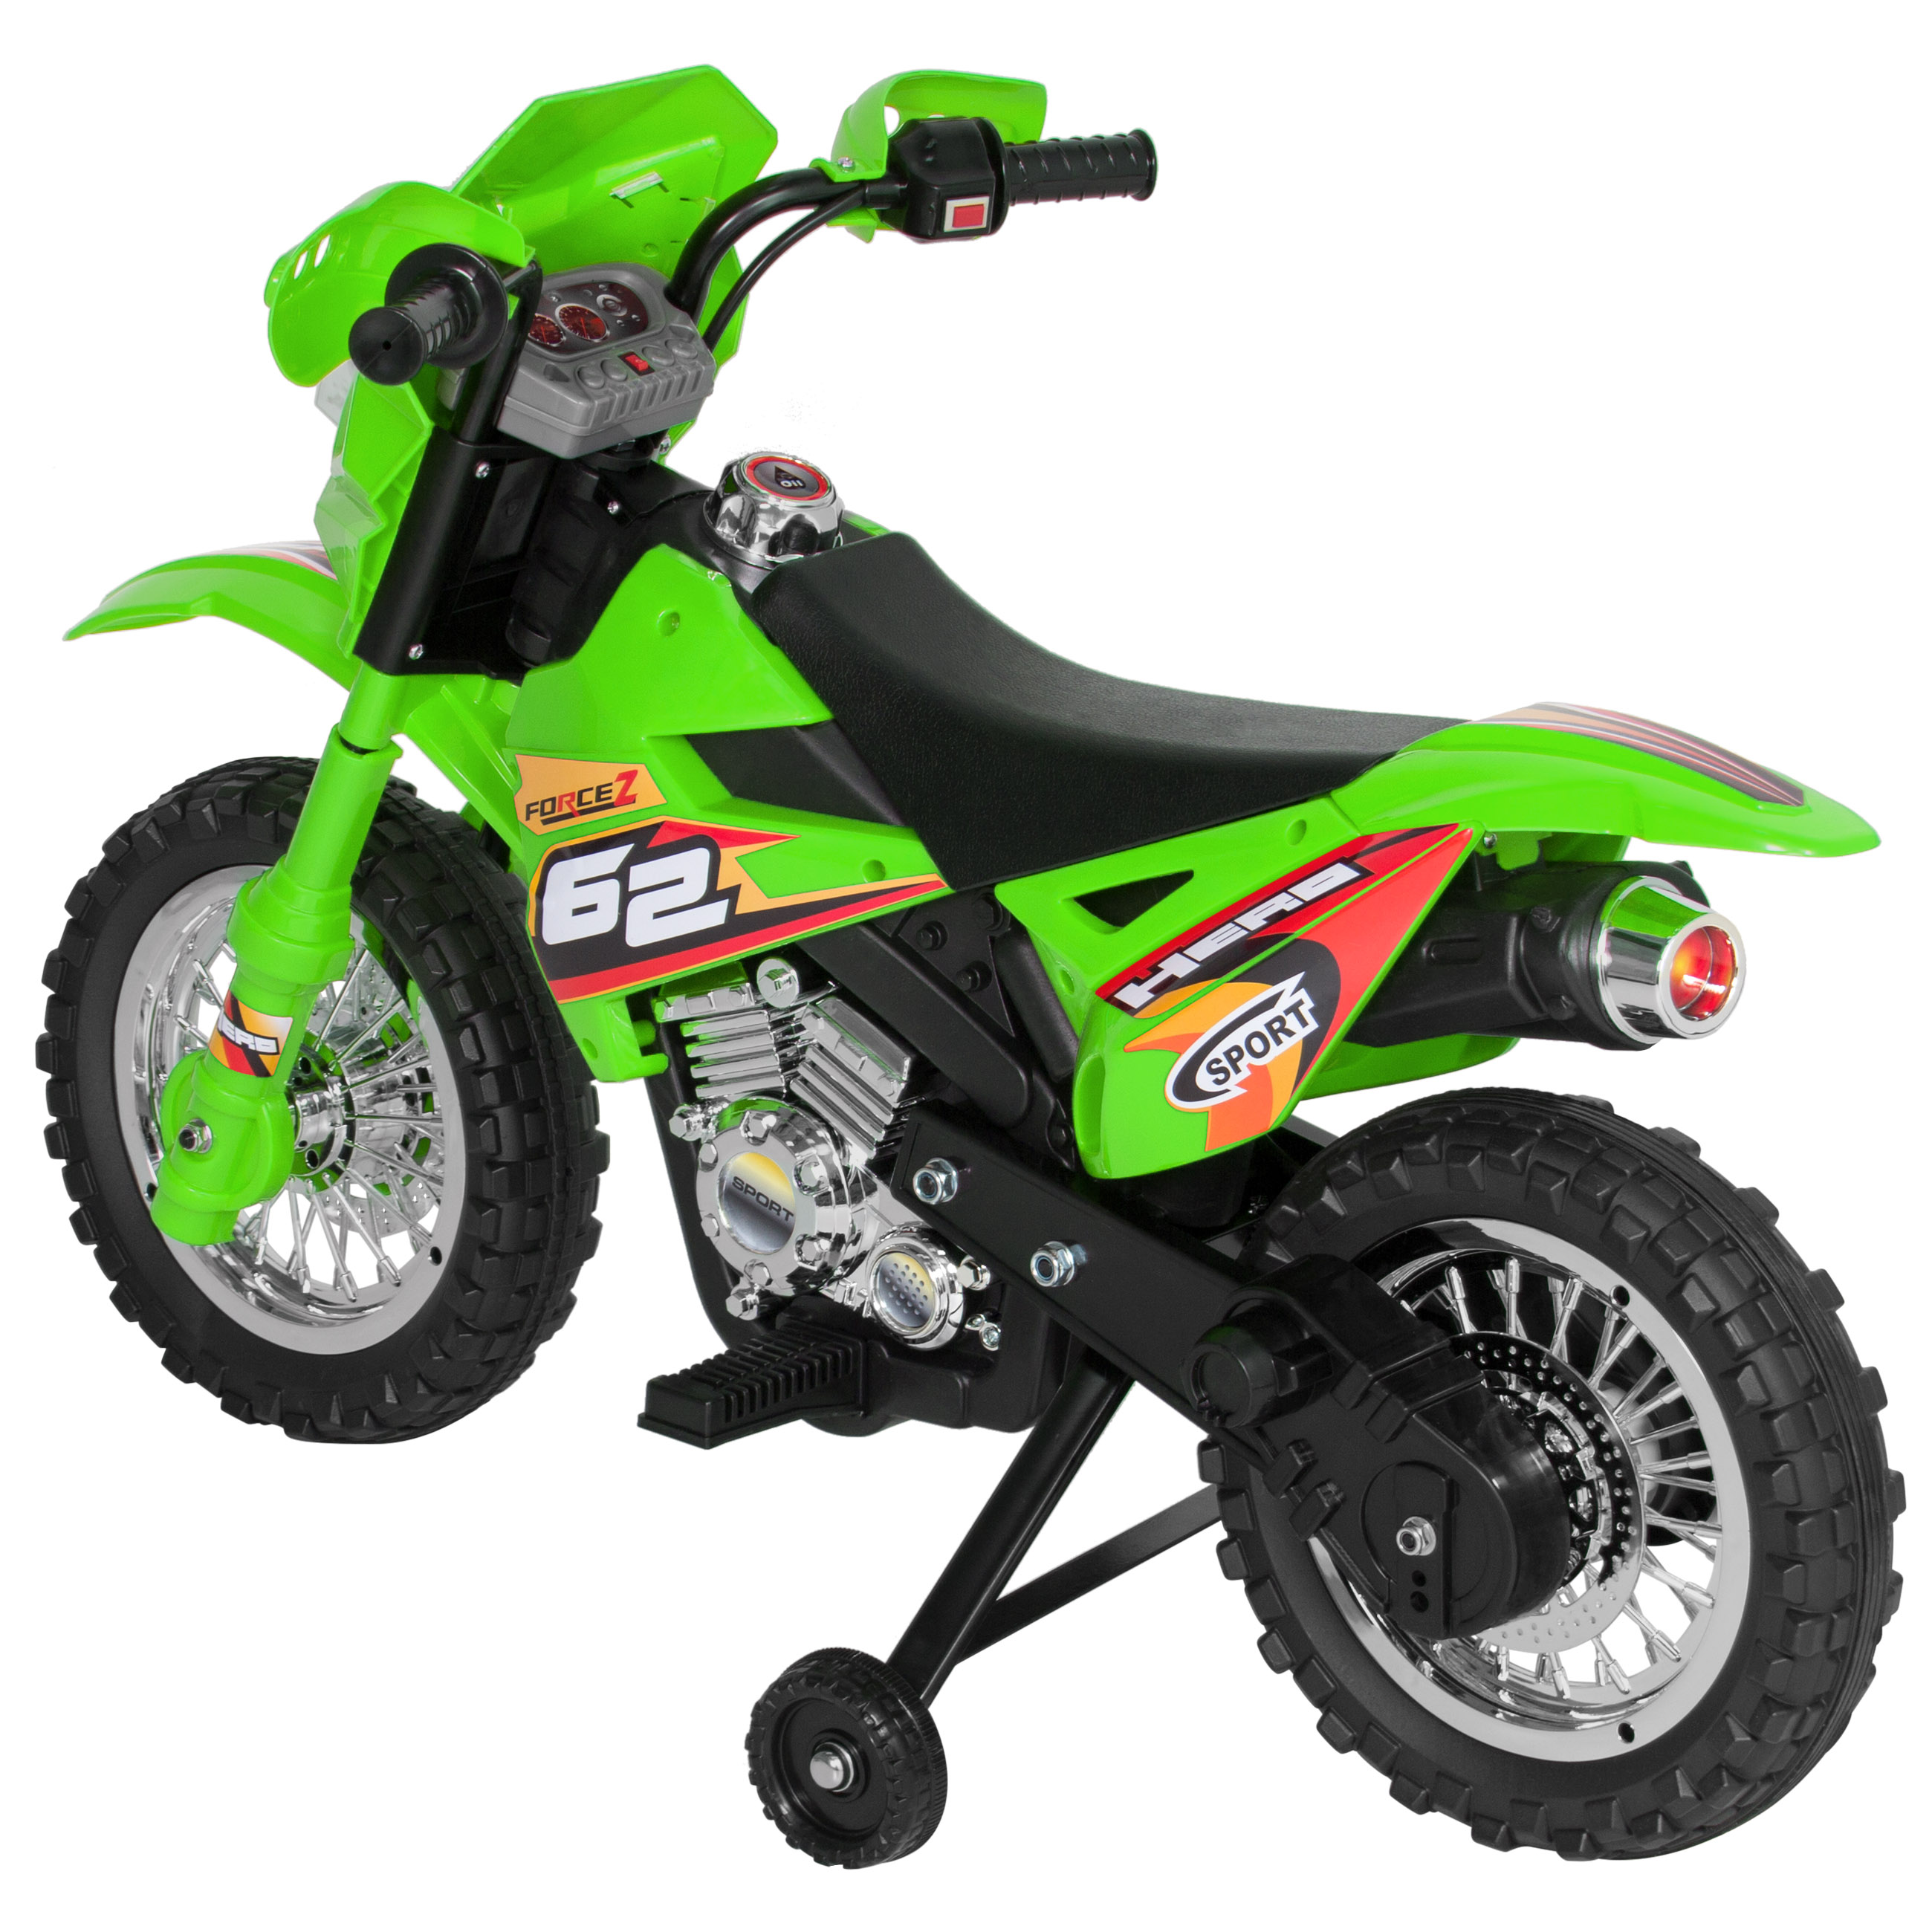 6v electric kids ride on motorcycle dirt bike w training. Black Bedroom Furniture Sets. Home Design Ideas